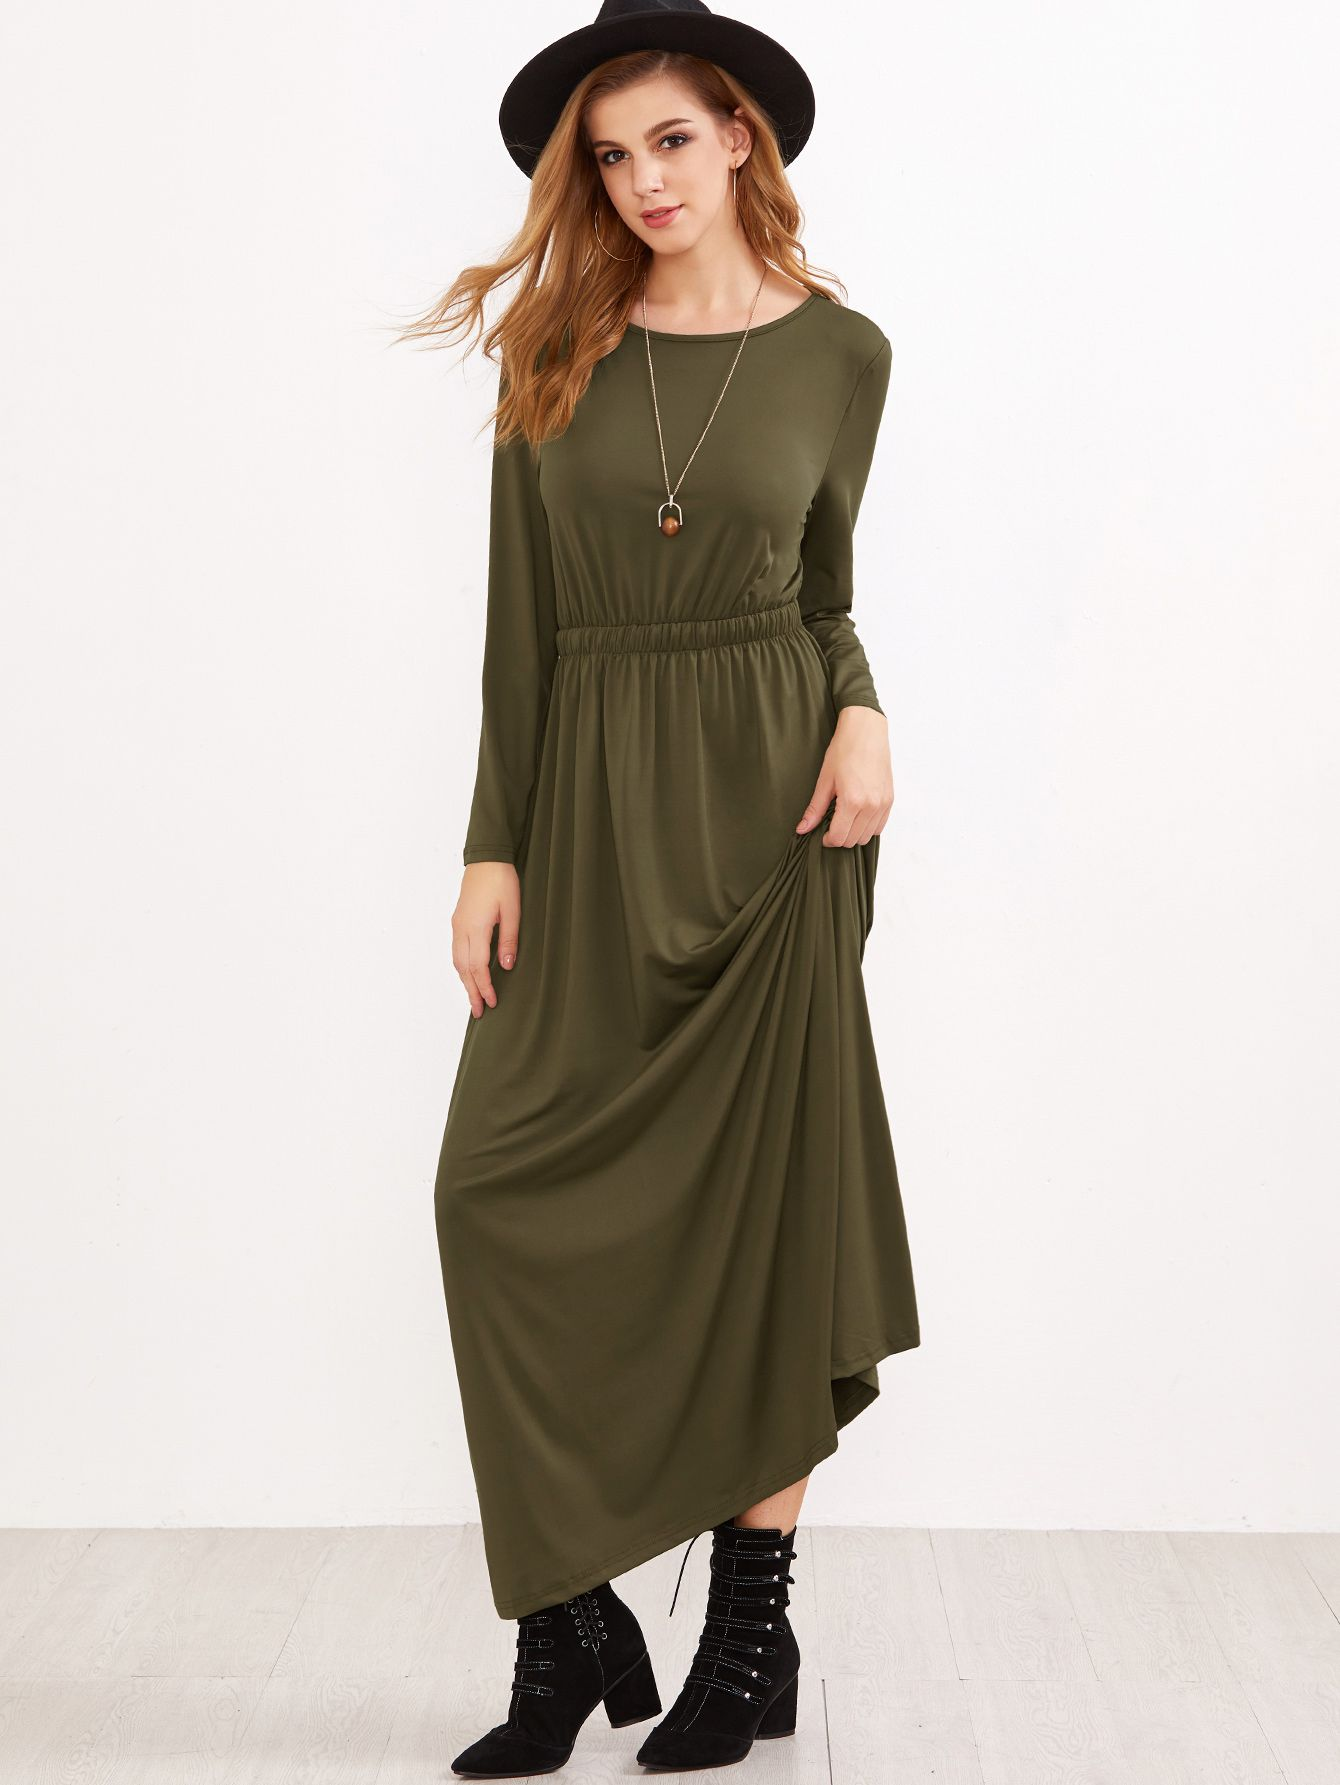 2746339b2a Shop Army Green Elastic Waist Maxi Dress online. SheIn offers Army Green  Elastic Waist Maxi Dress & more to fit your fashionable needs.